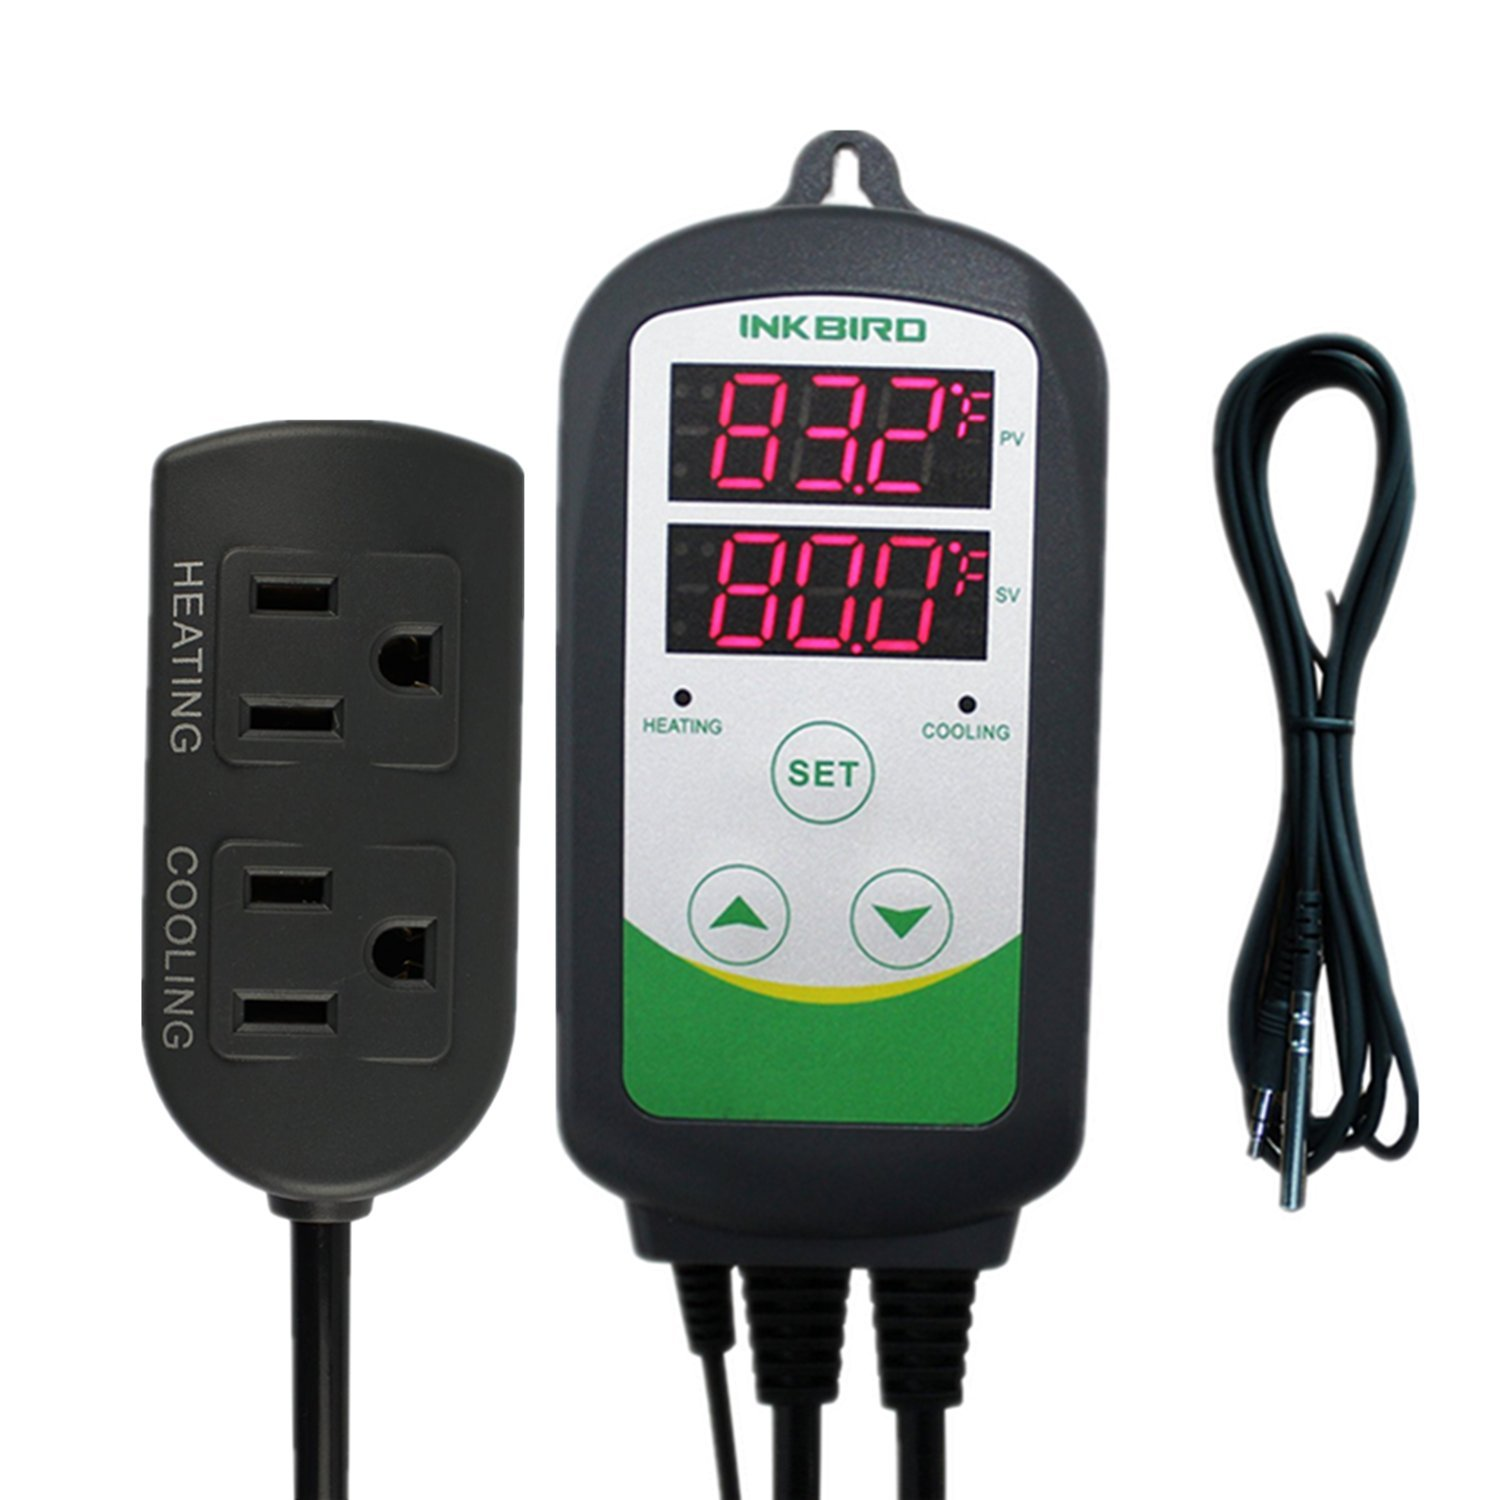 Inkbird Pre-Wired Digital Dual Stage Temperature Controller Outlet Thermostats 110V 1100W With 6.65ft DC Cord NTC Stainless Probe Sensor for Aquarium, Incubator ect